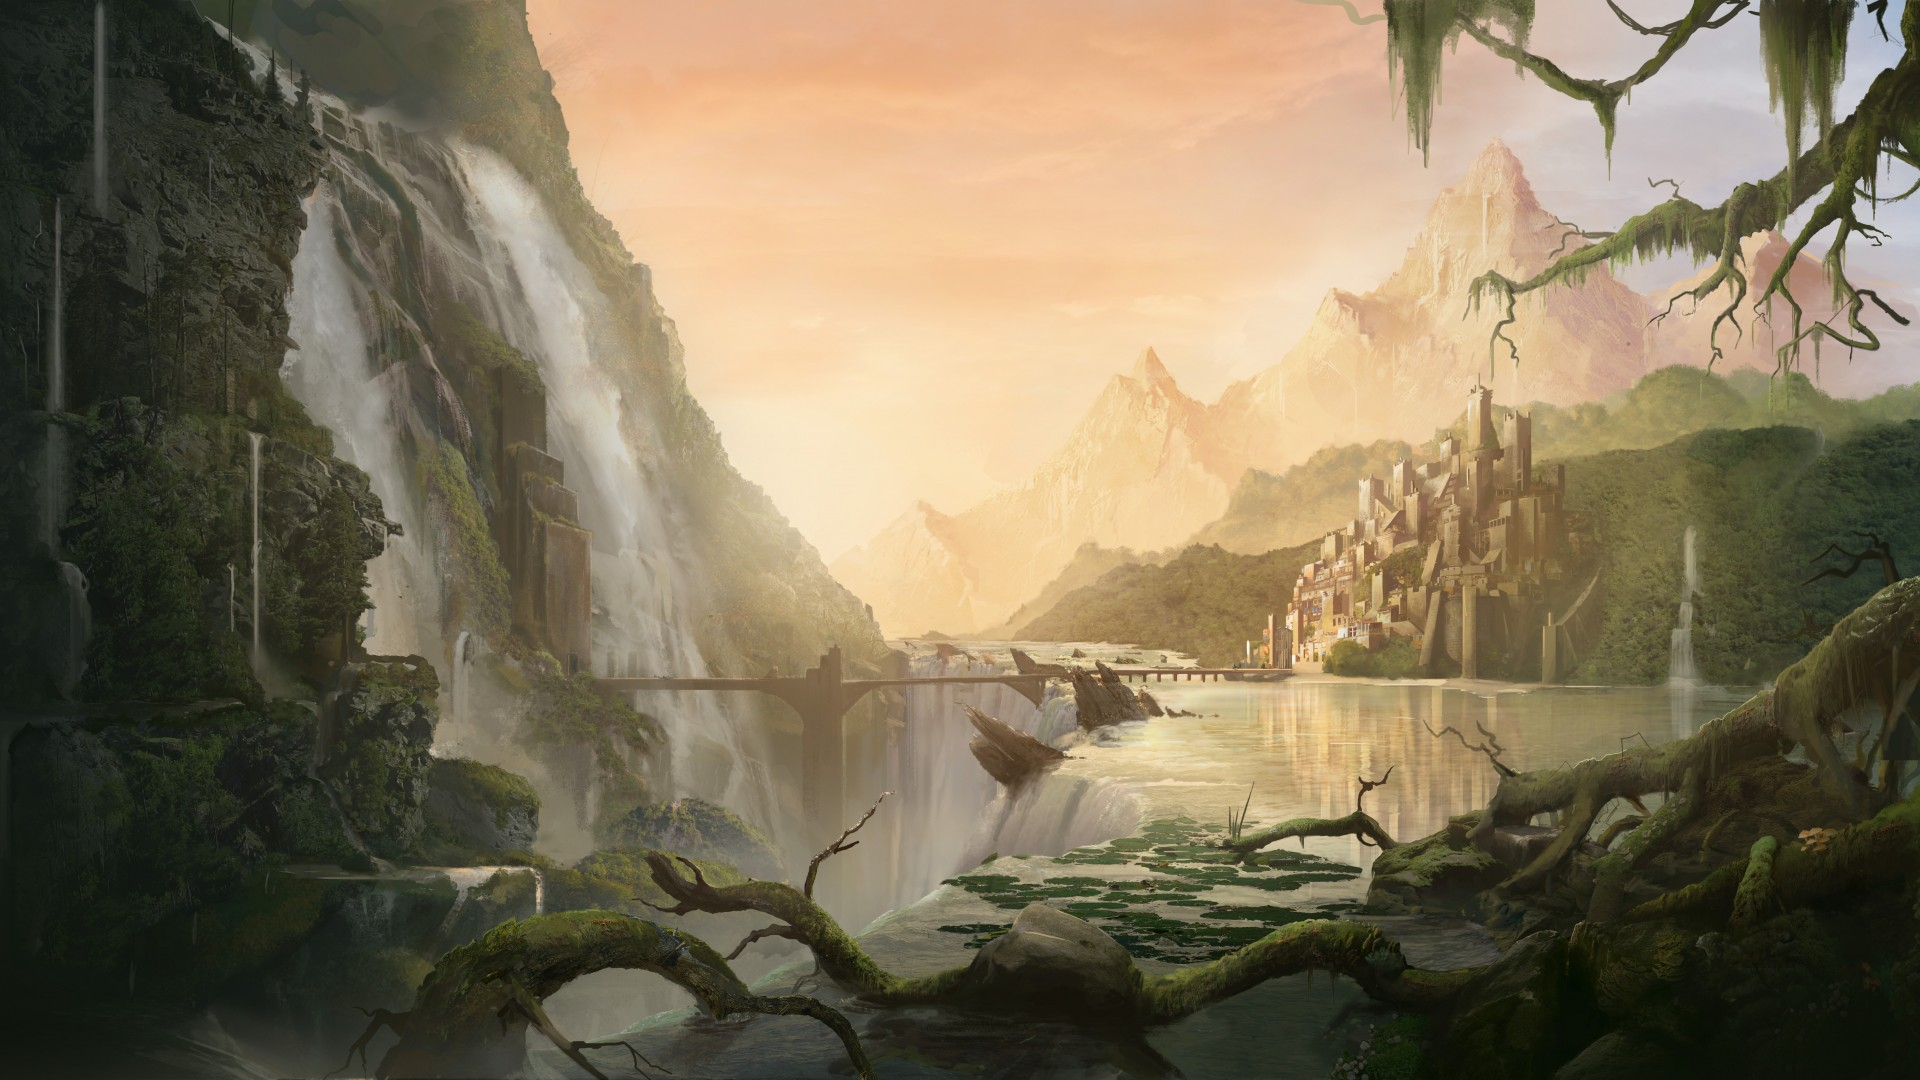 matte painting, 5k, 4k wallpaper, 8k, art, village, city, forest, waterfall, bridge, river (horizontal)